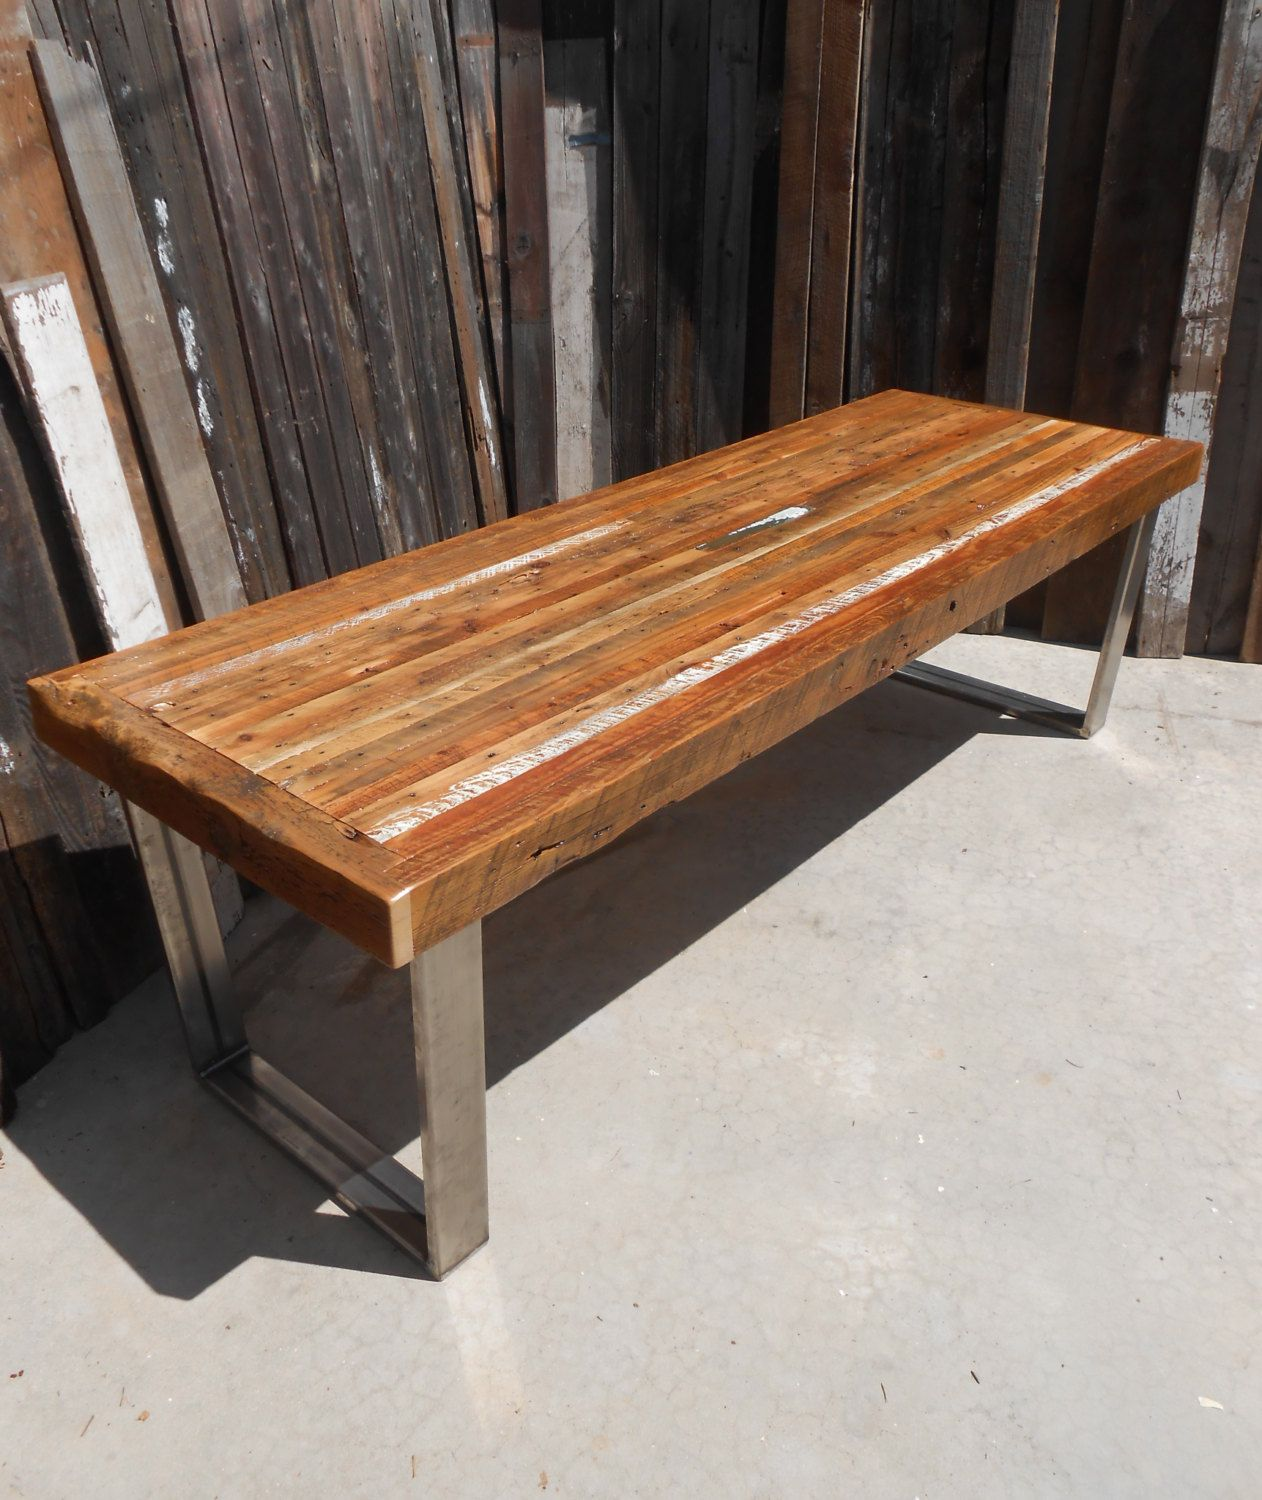 Custom Outdoor Indoor Rustic Modern Reclaimed Wood Dining Table Coffee Made To Order